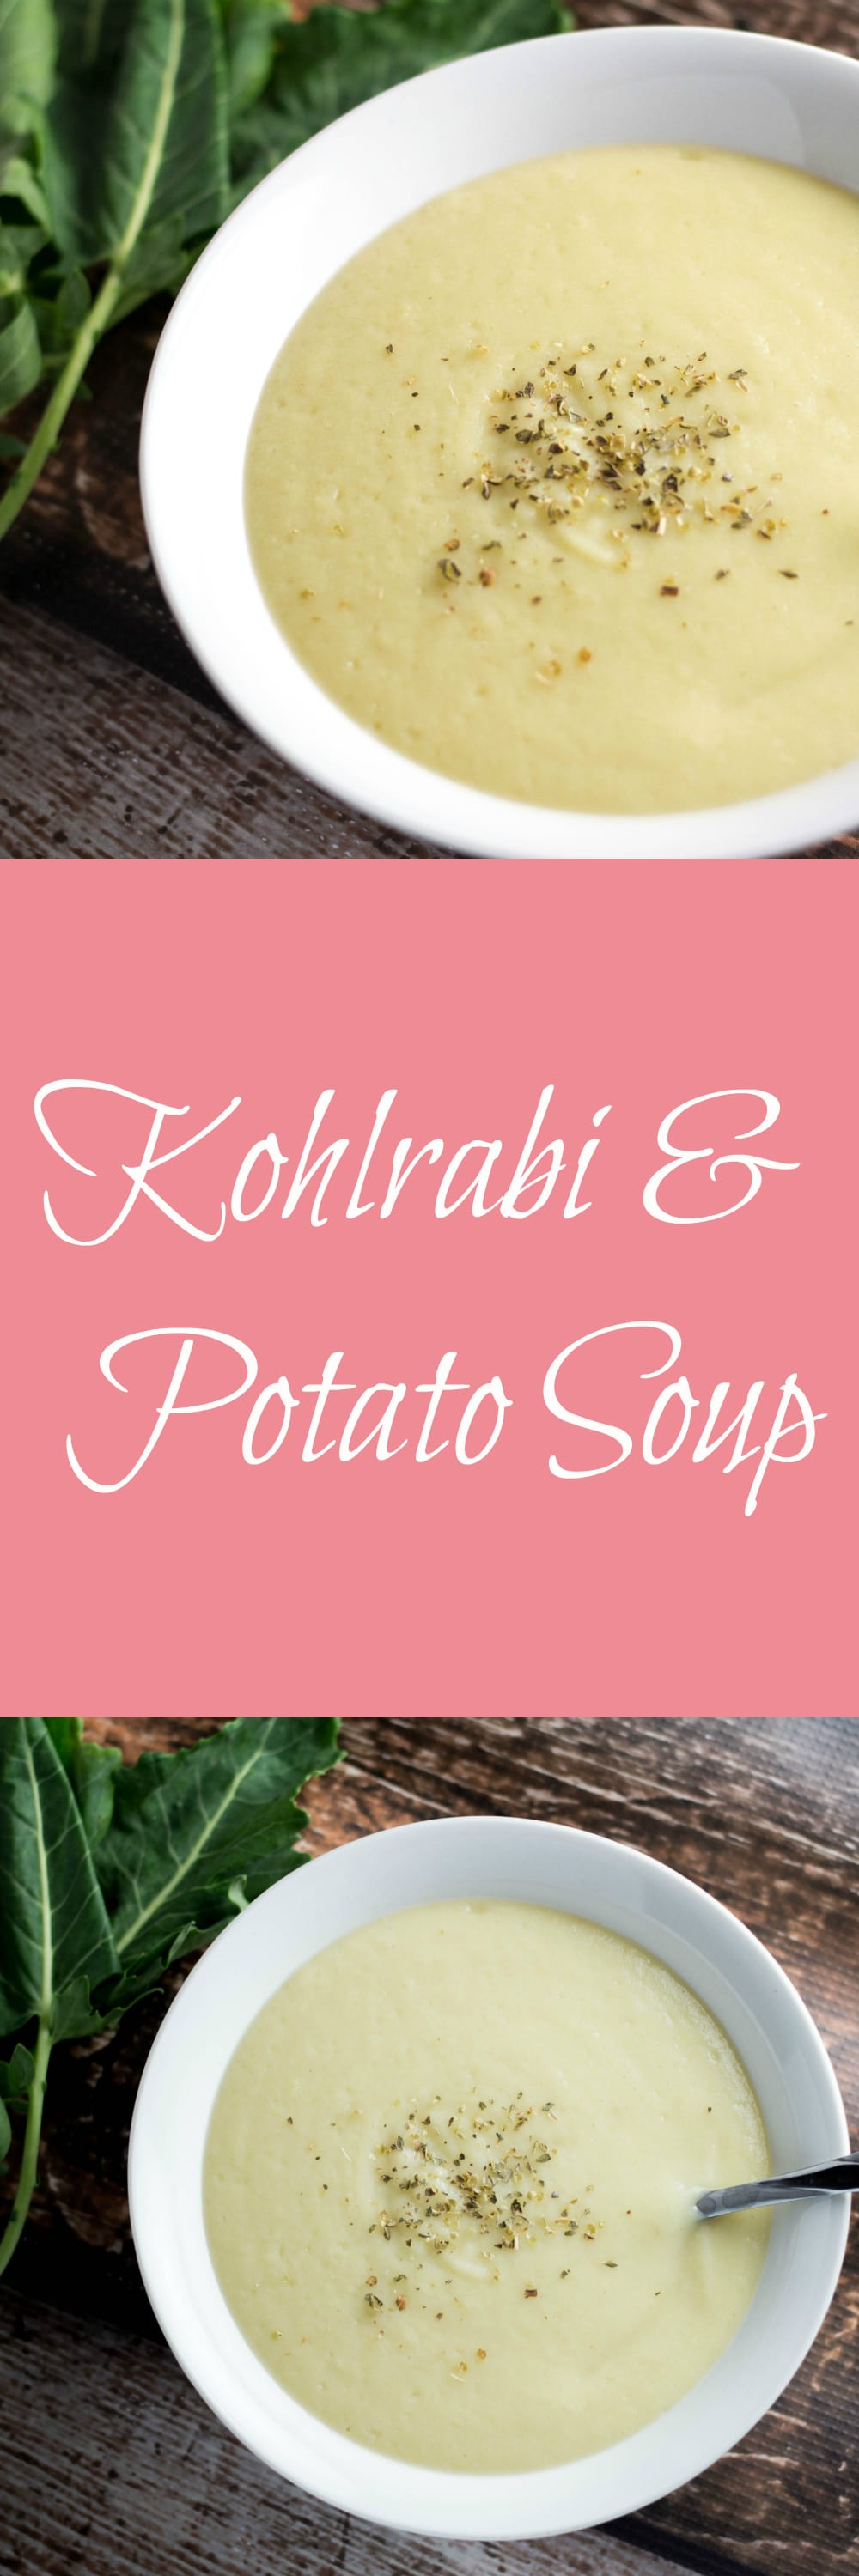 Kohlrabi and Potato Soup! Perfect for the winter and fighting off colds! |Krollskorner.com